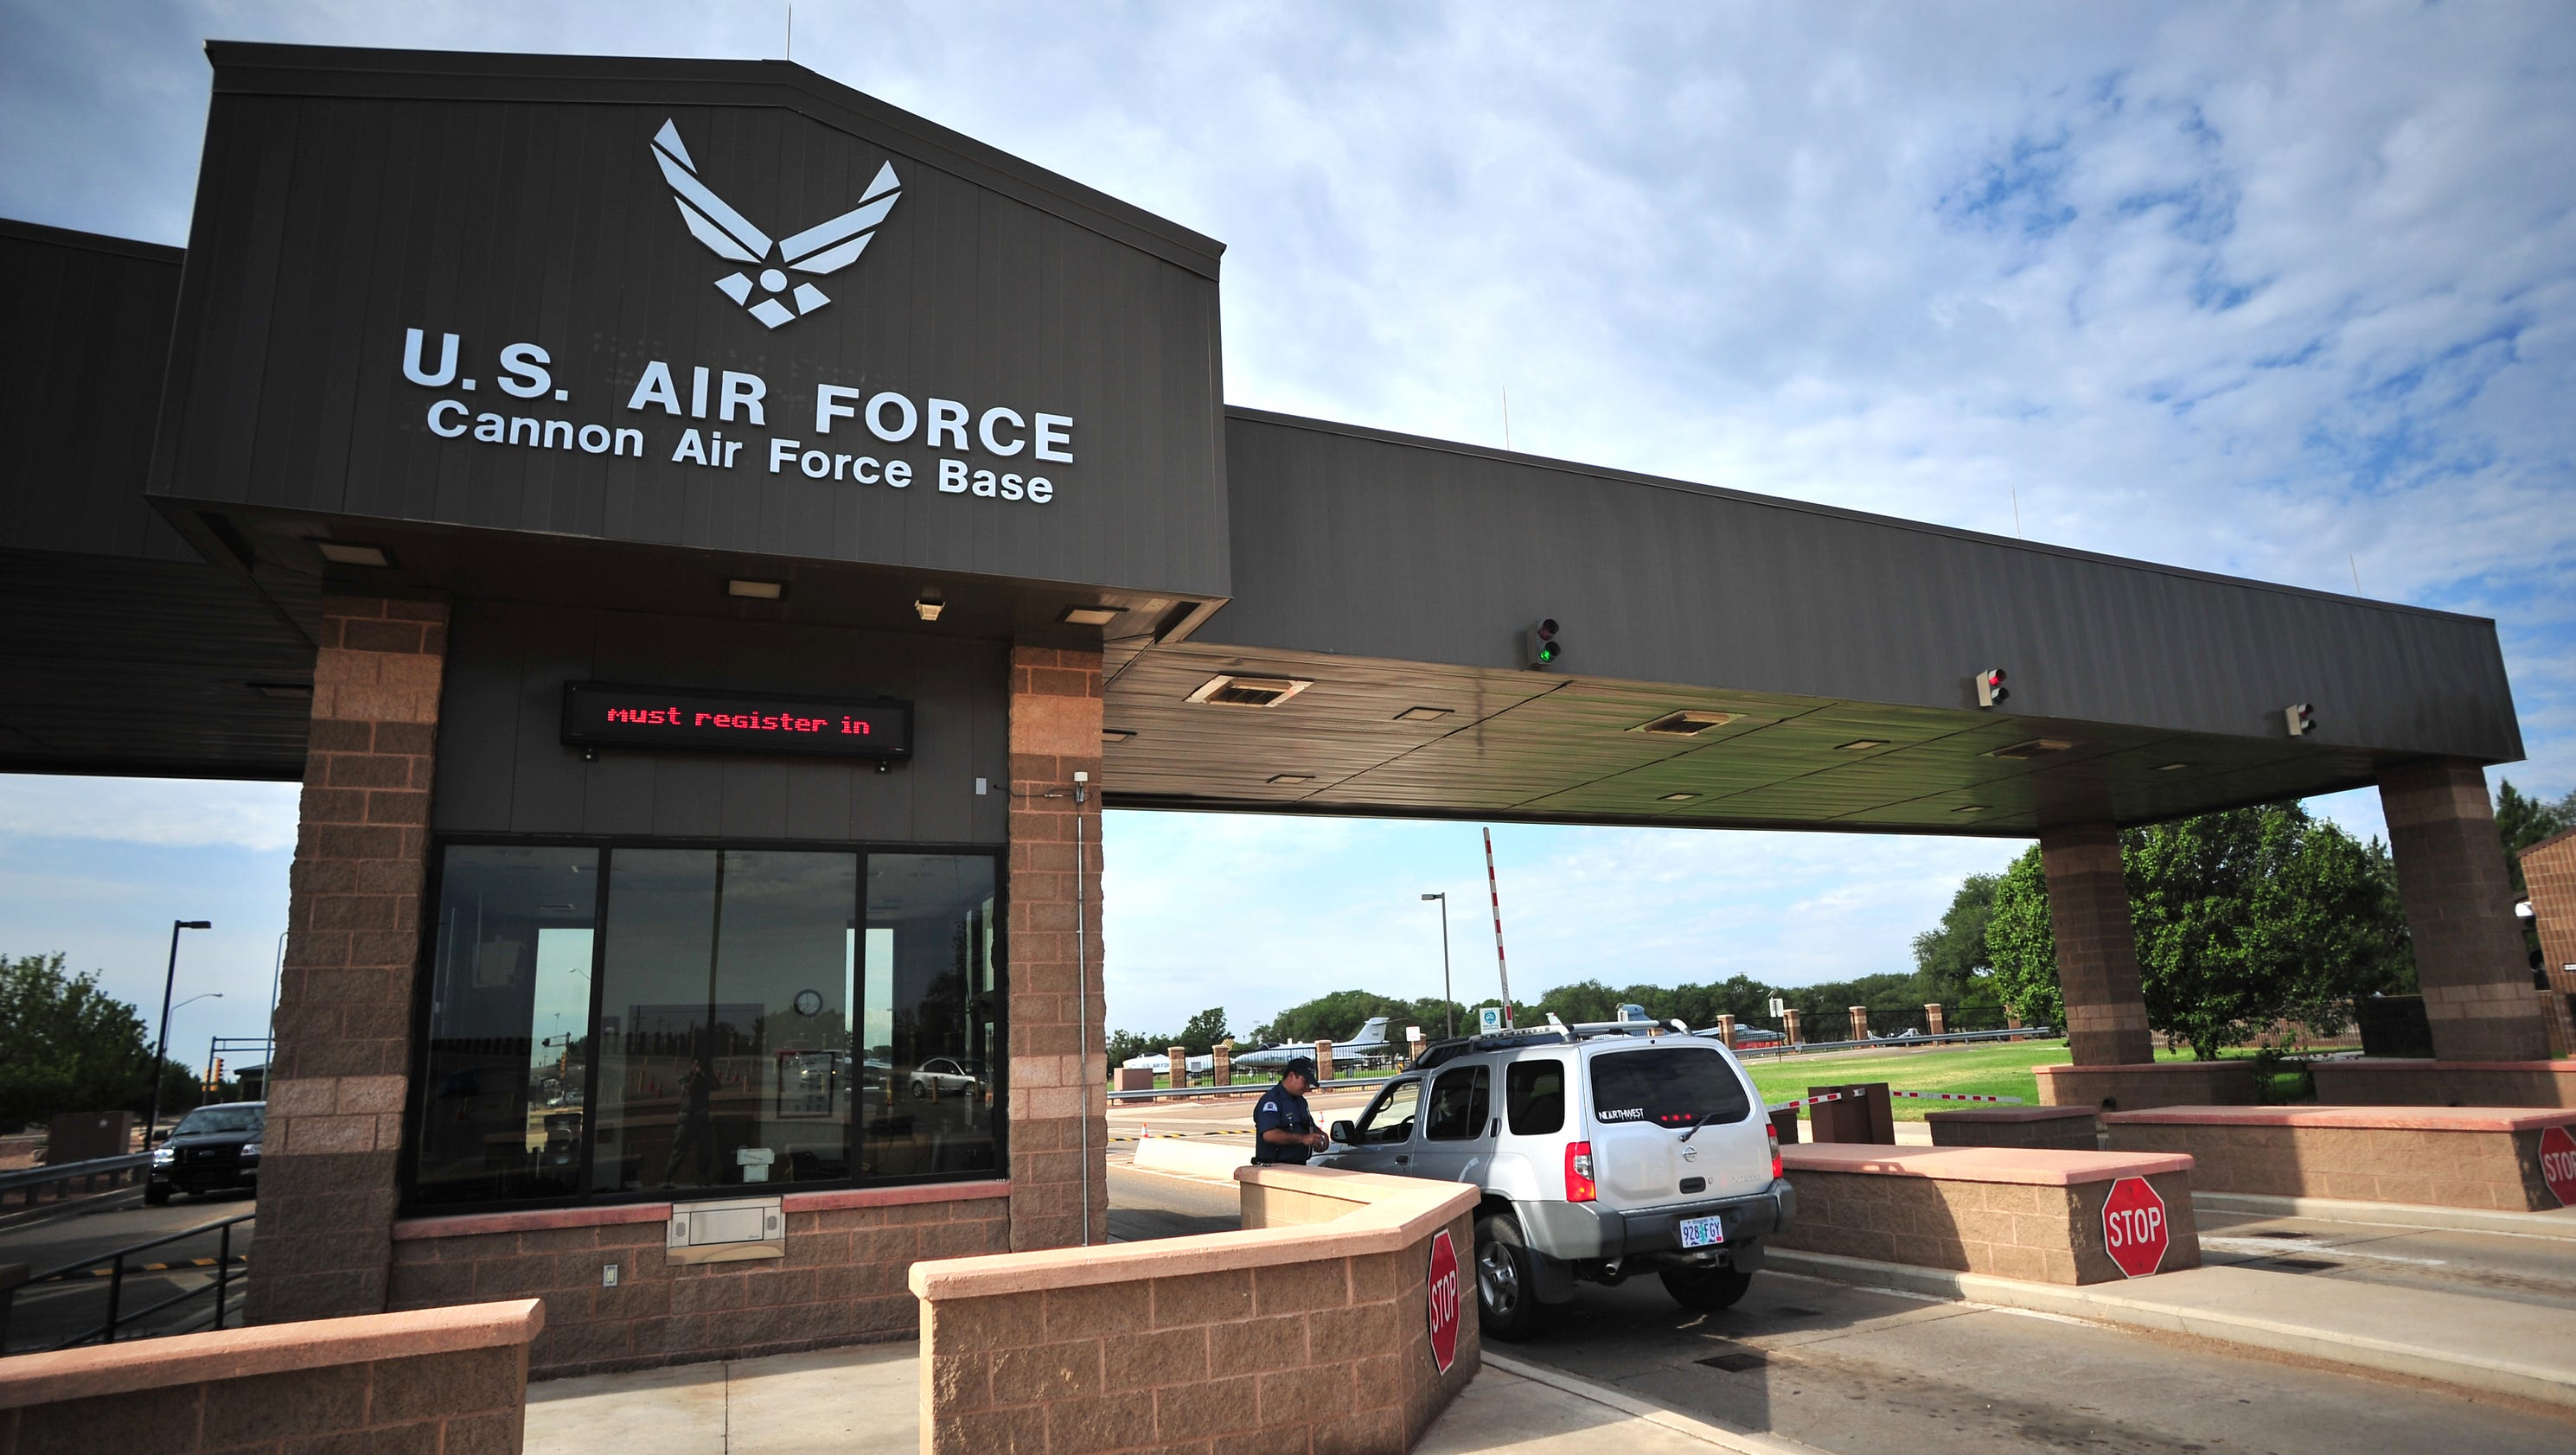 vance afb chatrooms A t-38 assigned to vance air force base in oklahoma, crashed on friday the  pilot ejected and was not seriously injured, according to base officials (danny.